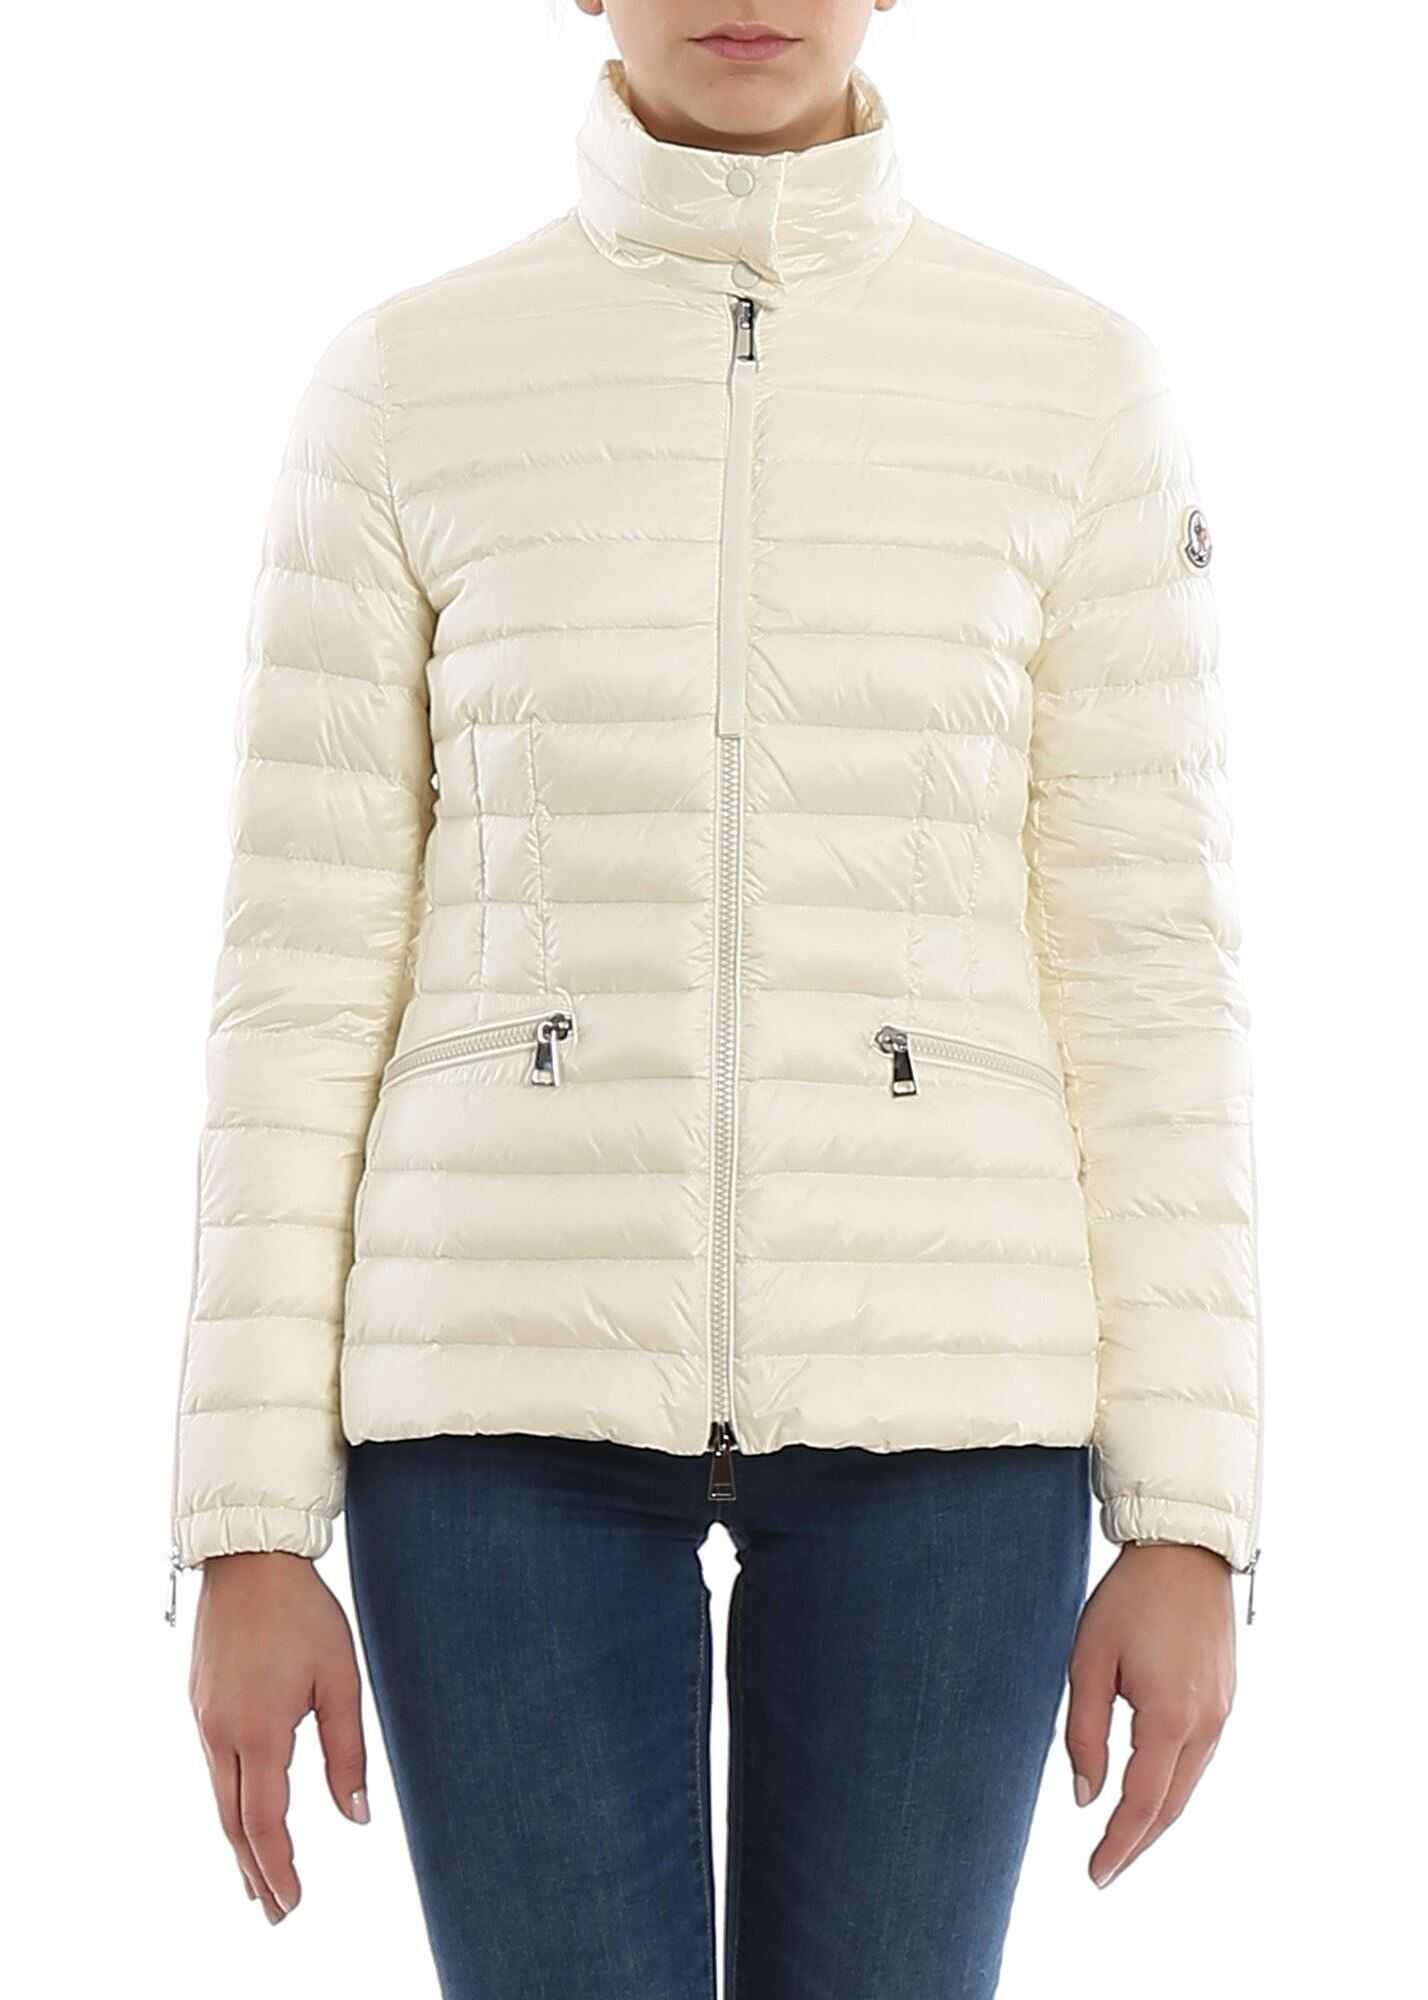 Moncler Safre Puffer Jacket In White White